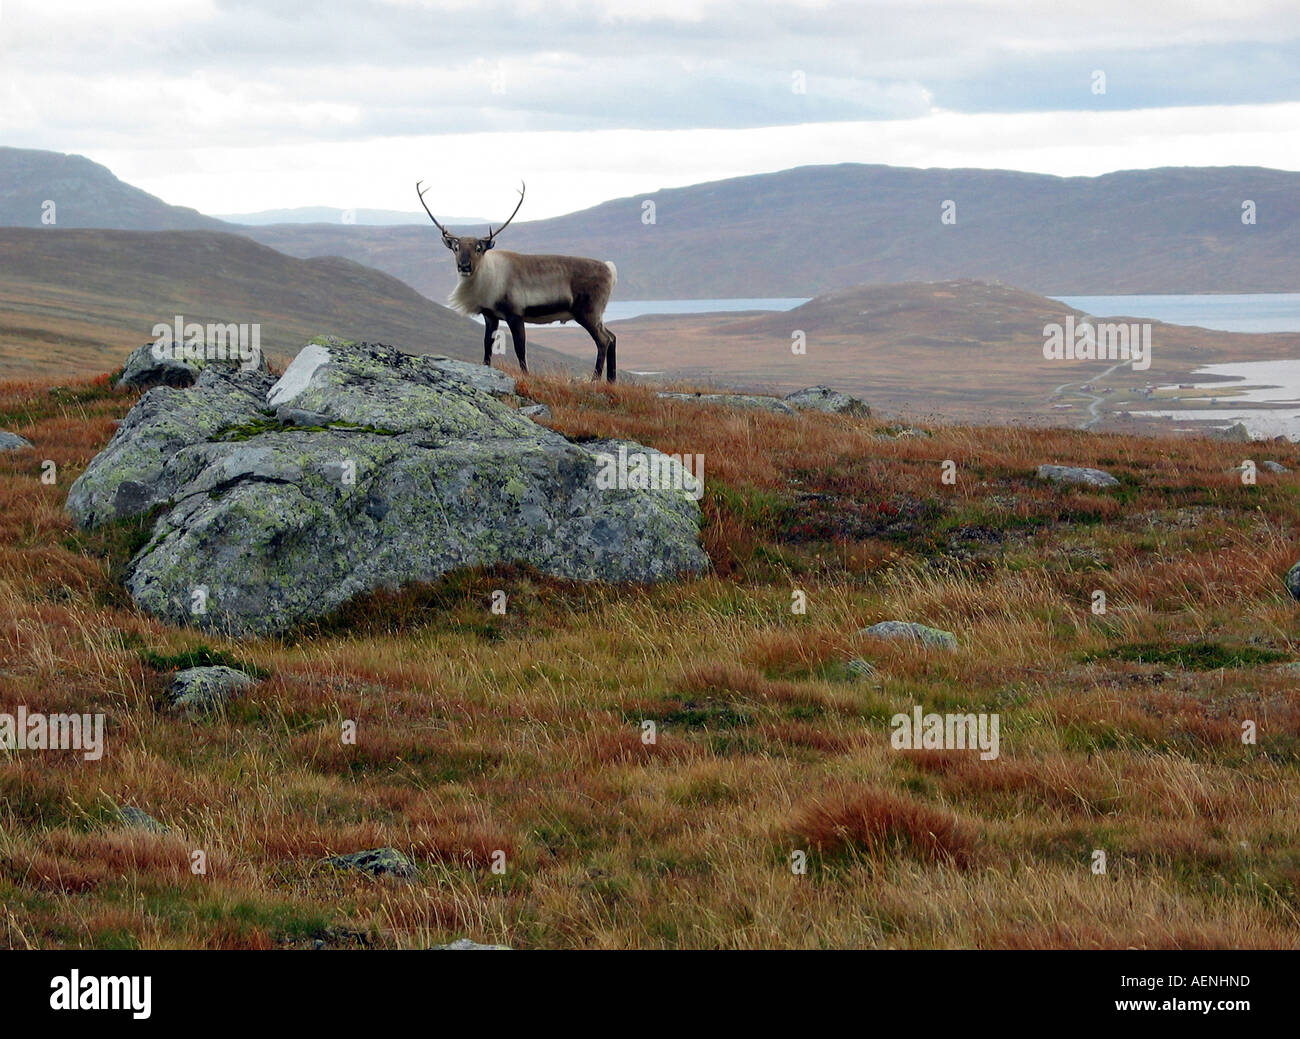 Male Reindeer Stag looking into lens, wildlife watching during Indian summer, Jotunheimen, Norway - Stock Image